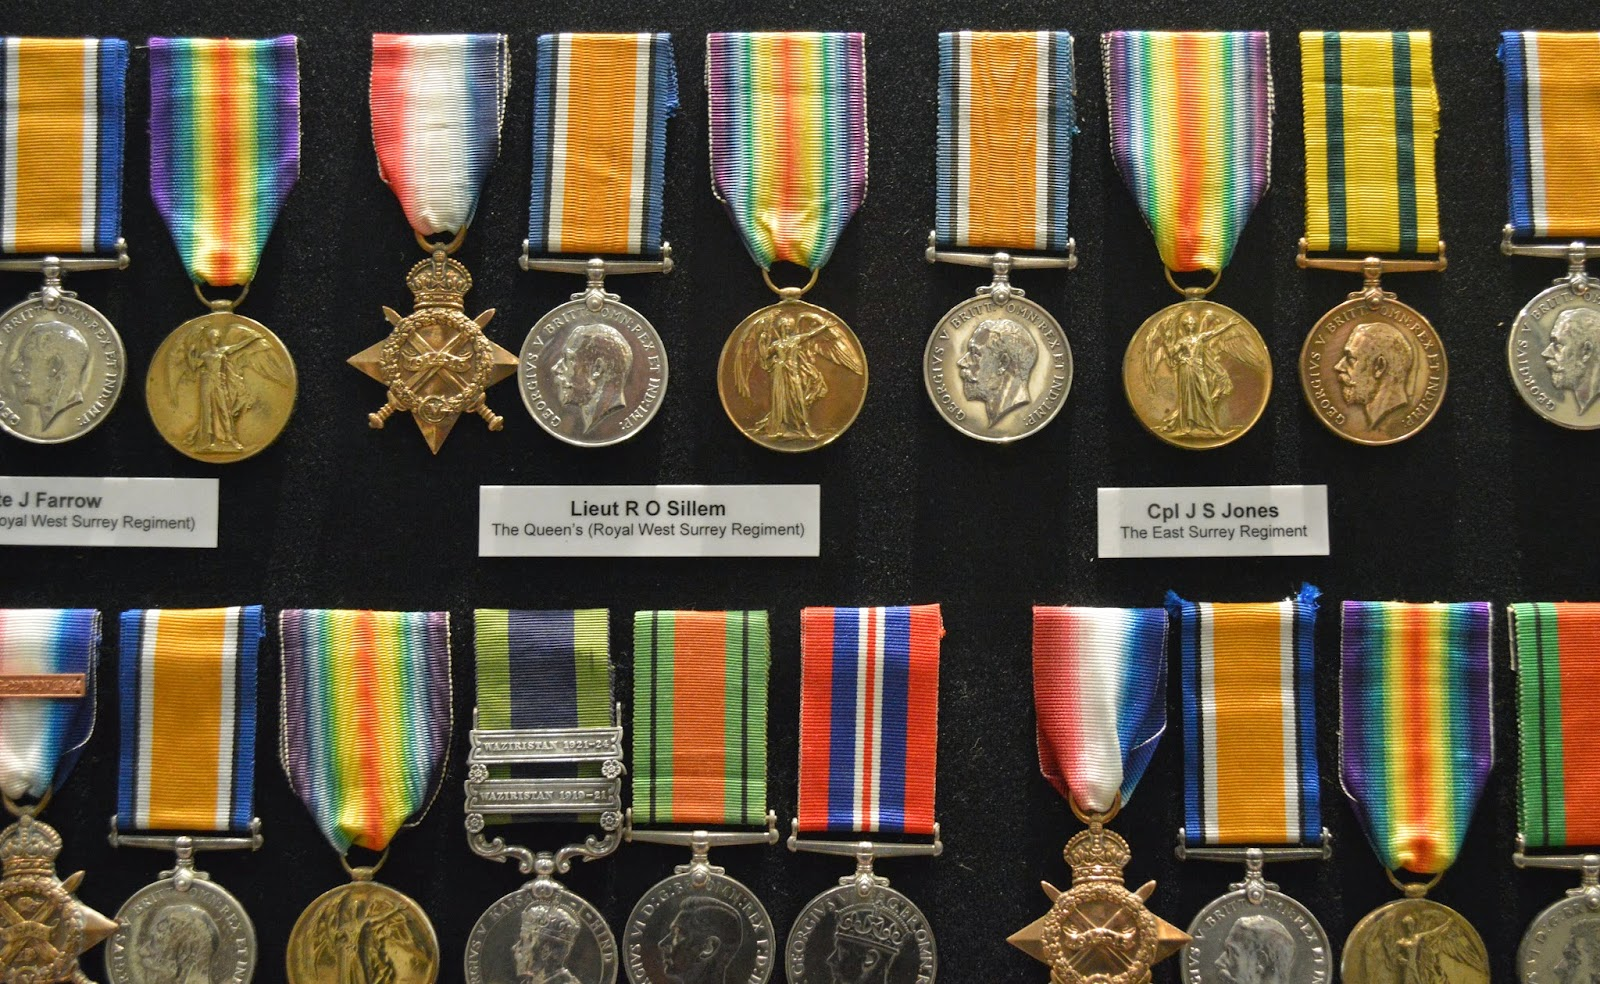 collection, Surrey Infantry Museum, Guilford, military medals, campaign, war, Victorian Cross, photo, photography, picture, award, history, World War,